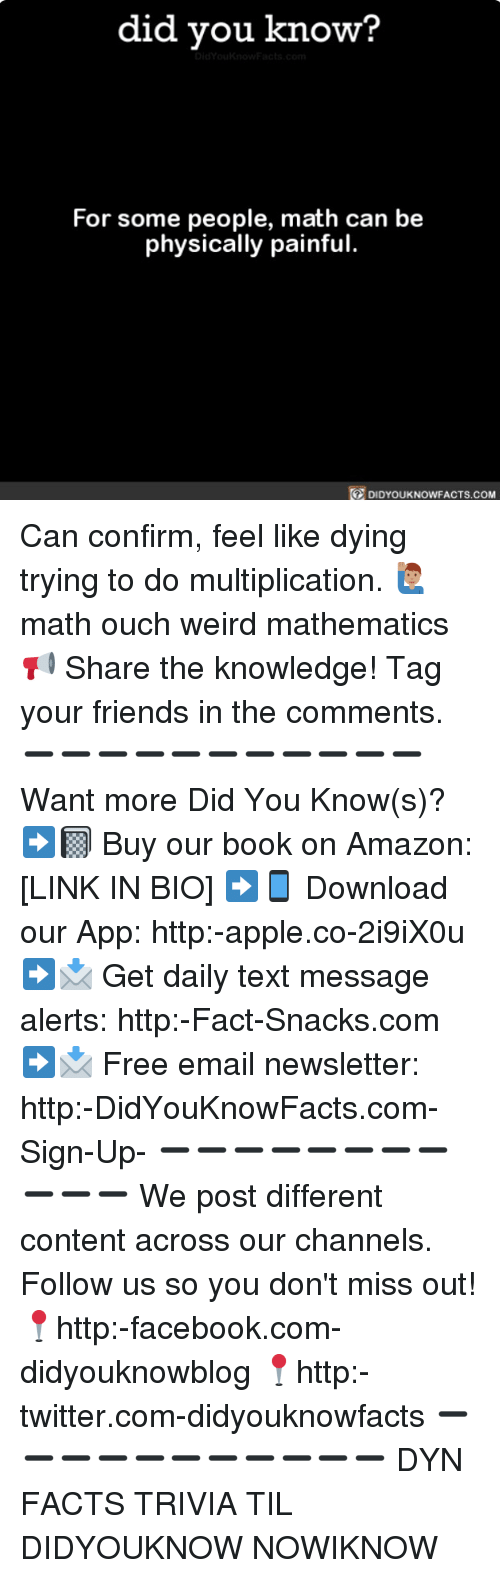 Confirmated: did you know?  For some people, math can be  physically painful.  DIDYOUKNOWFACTS.COM Can confirm, feel like dying trying to do multiplication. 🙋🏽♂️ math ouch weird mathematics 📢 Share the knowledge! Tag your friends in the comments. ➖➖➖➖➖➖➖➖➖➖➖ Want more Did You Know(s)? ➡📓 Buy our book on Amazon: [LINK IN BIO] ➡📱 Download our App: http:-apple.co-2i9iX0u ➡📩 Get daily text message alerts: http:-Fact-Snacks.com ➡📩 Free email newsletter: http:-DidYouKnowFacts.com-Sign-Up- ➖➖➖➖➖➖➖➖➖➖➖ We post different content across our channels. Follow us so you don't miss out! 📍http:-facebook.com-didyouknowblog 📍http:-twitter.com-didyouknowfacts ➖➖➖➖➖➖➖➖➖➖➖ DYN FACTS TRIVIA TIL DIDYOUKNOW NOWIKNOW